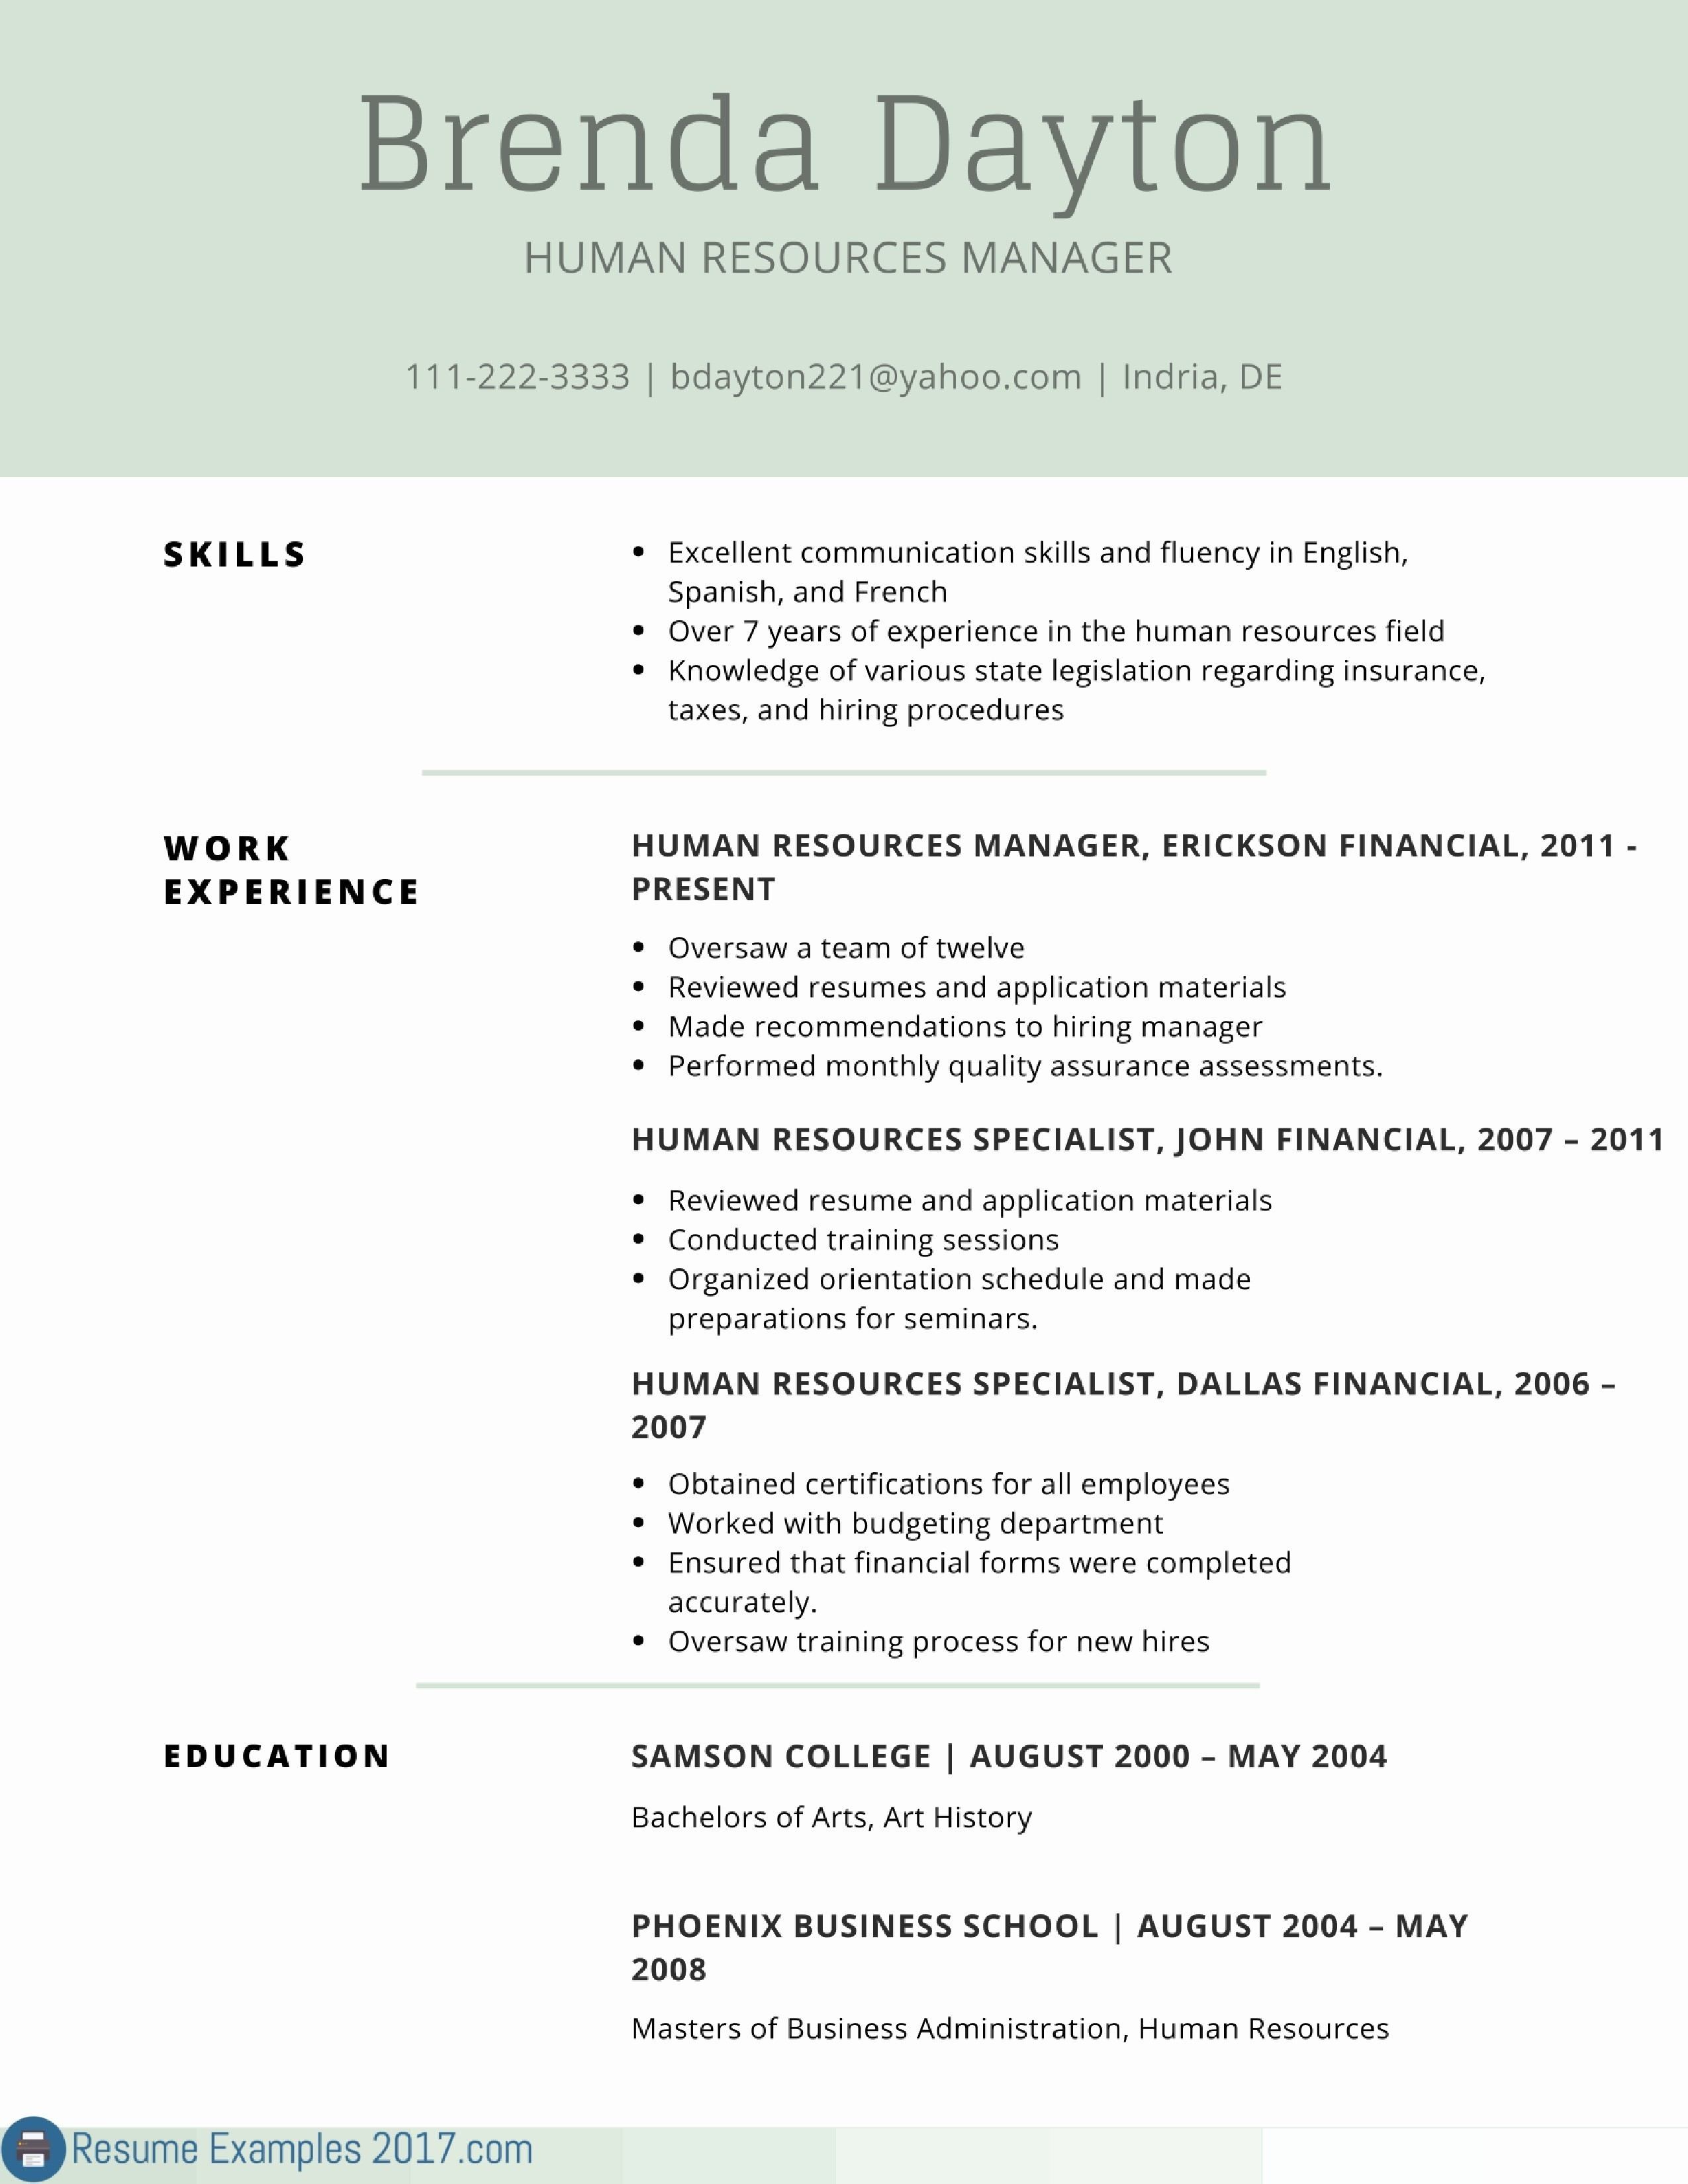 Sample Chronological Resume Template - Chronological Resume Samples Elegant Resume Templates Copy and Paste